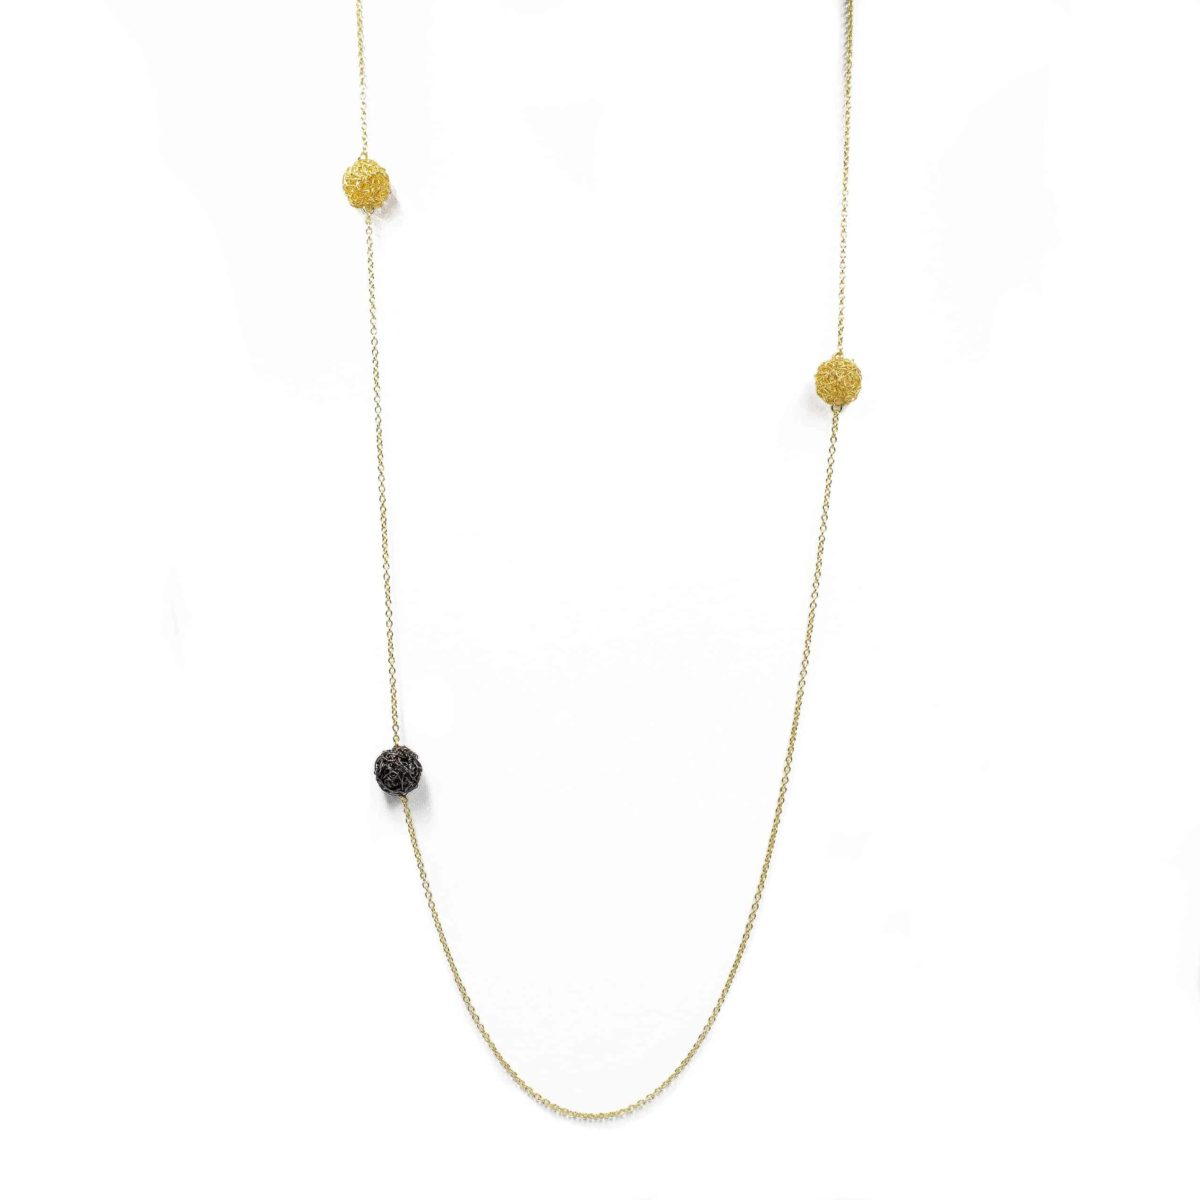 long pendant necklace in gold color